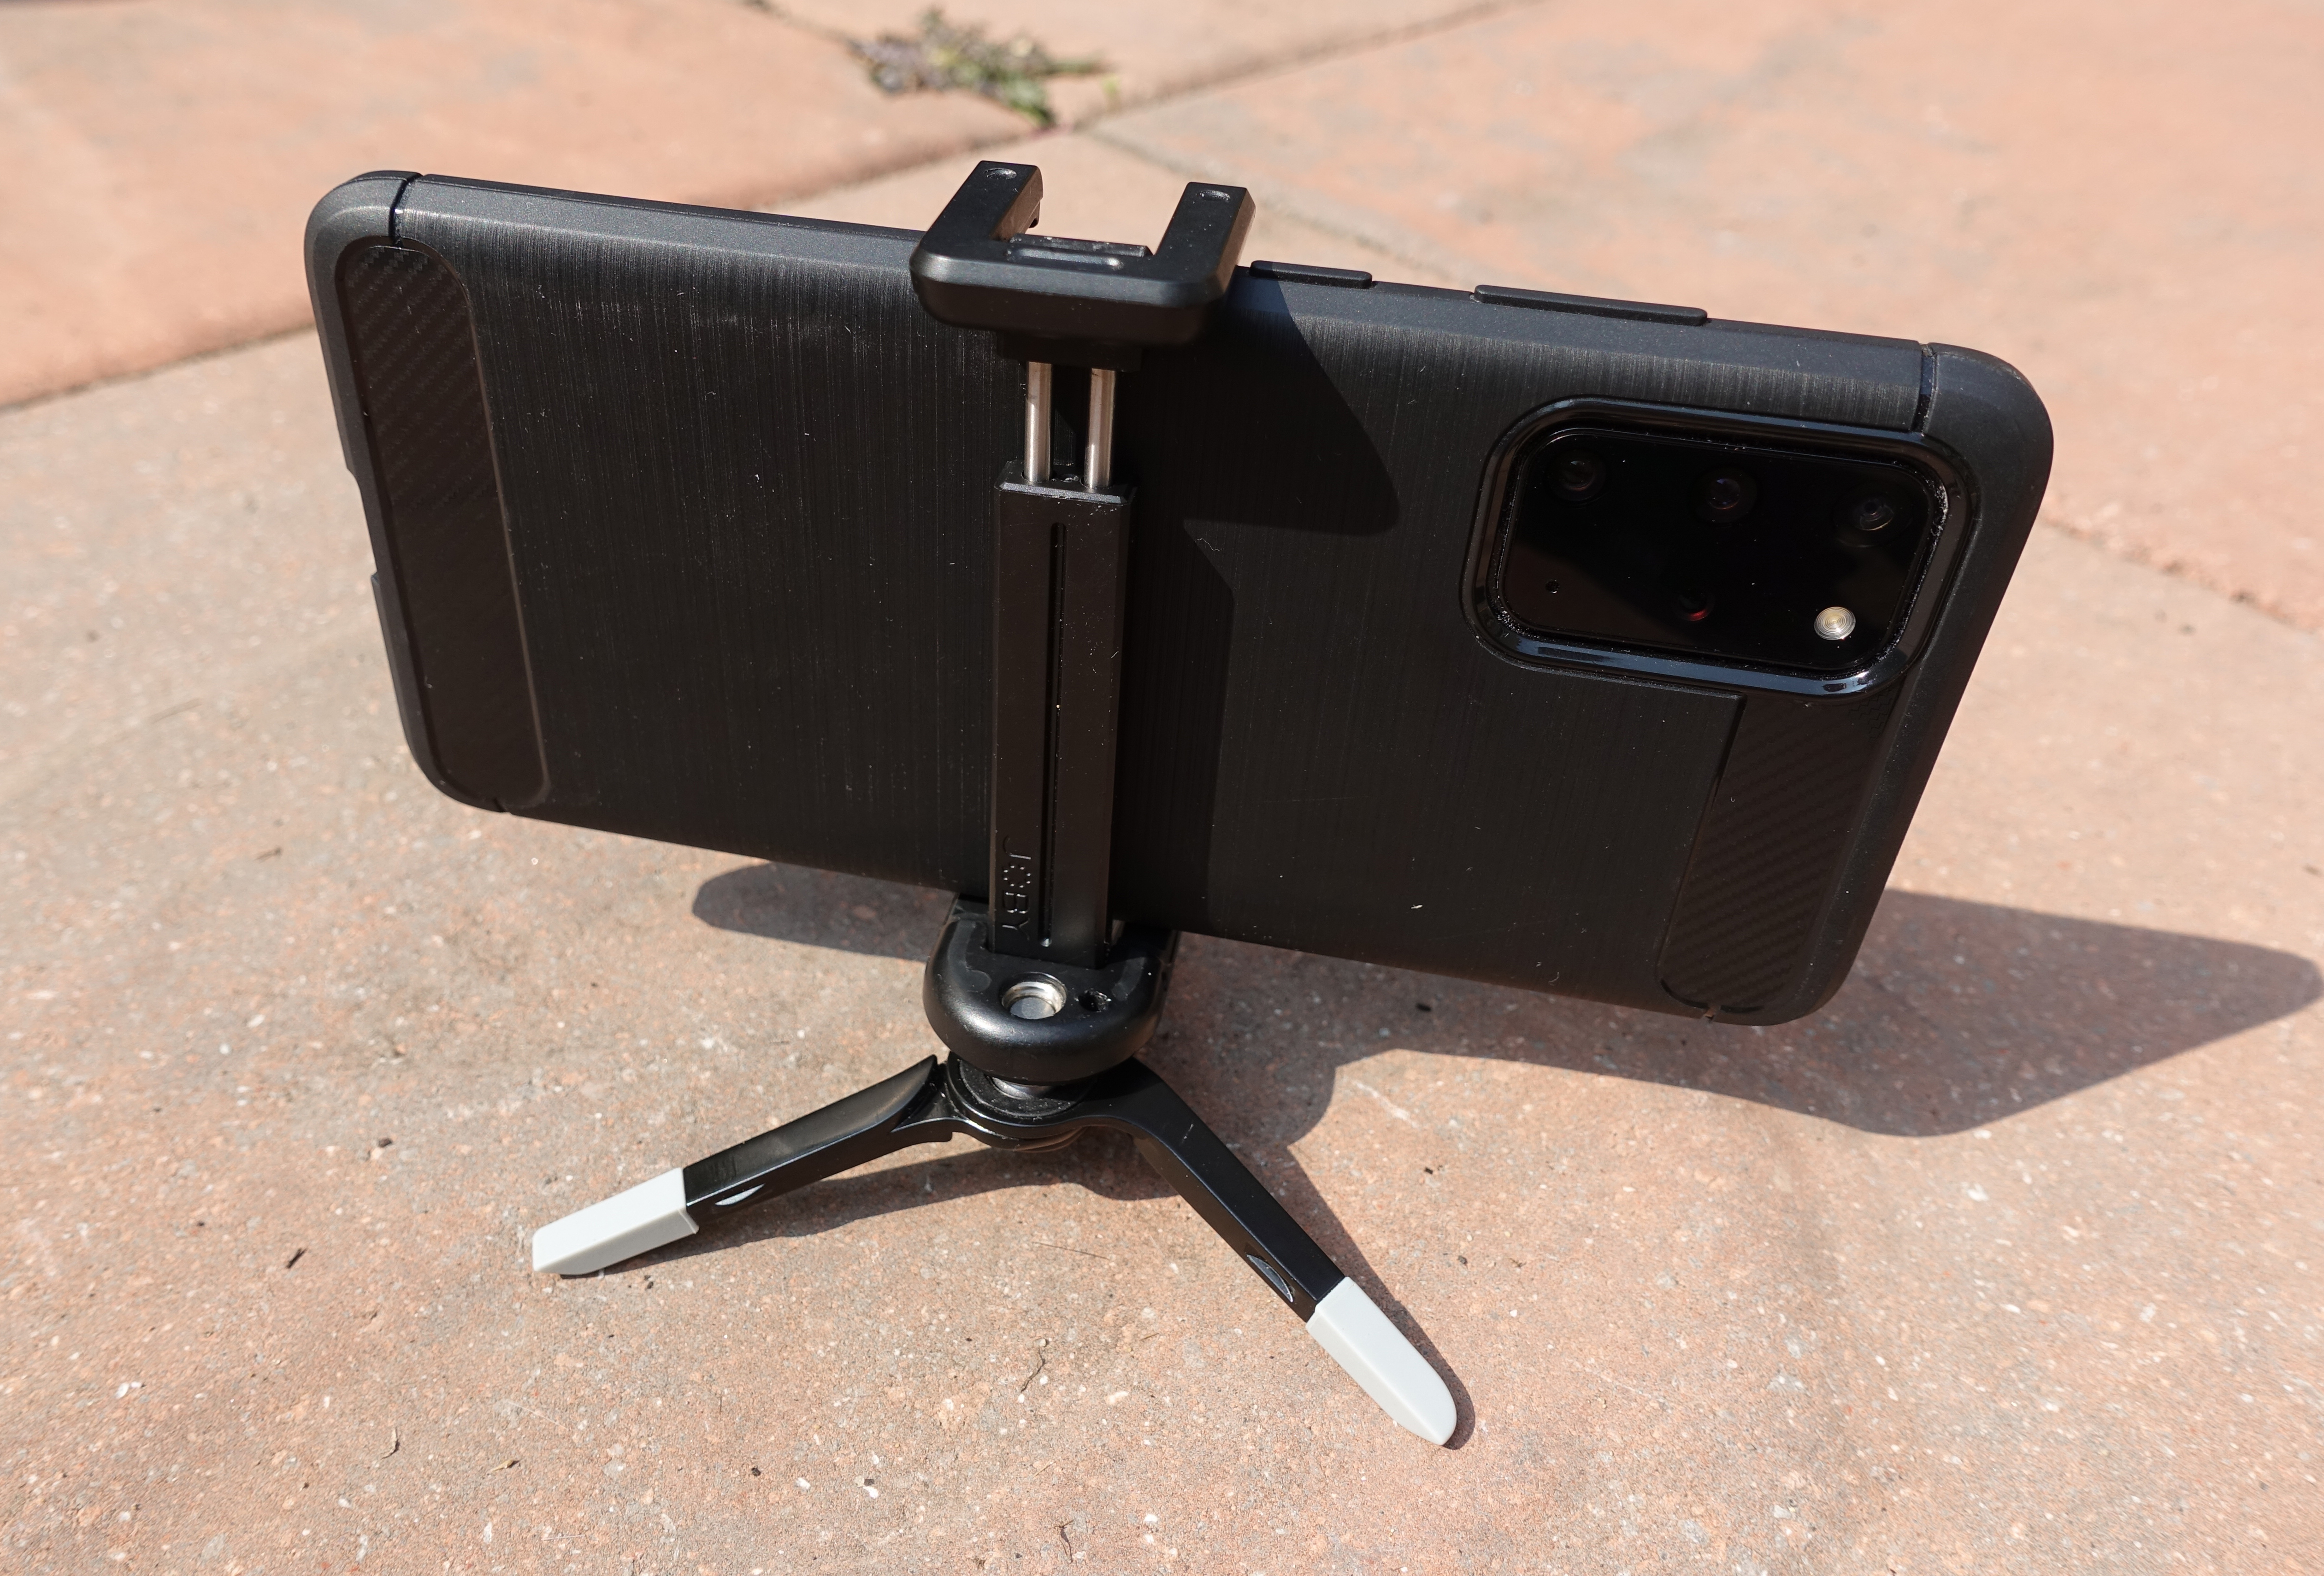 Though low to the ground, the combination of Joby mini-tripod and Joby GripTight phone clamp enable independent photography